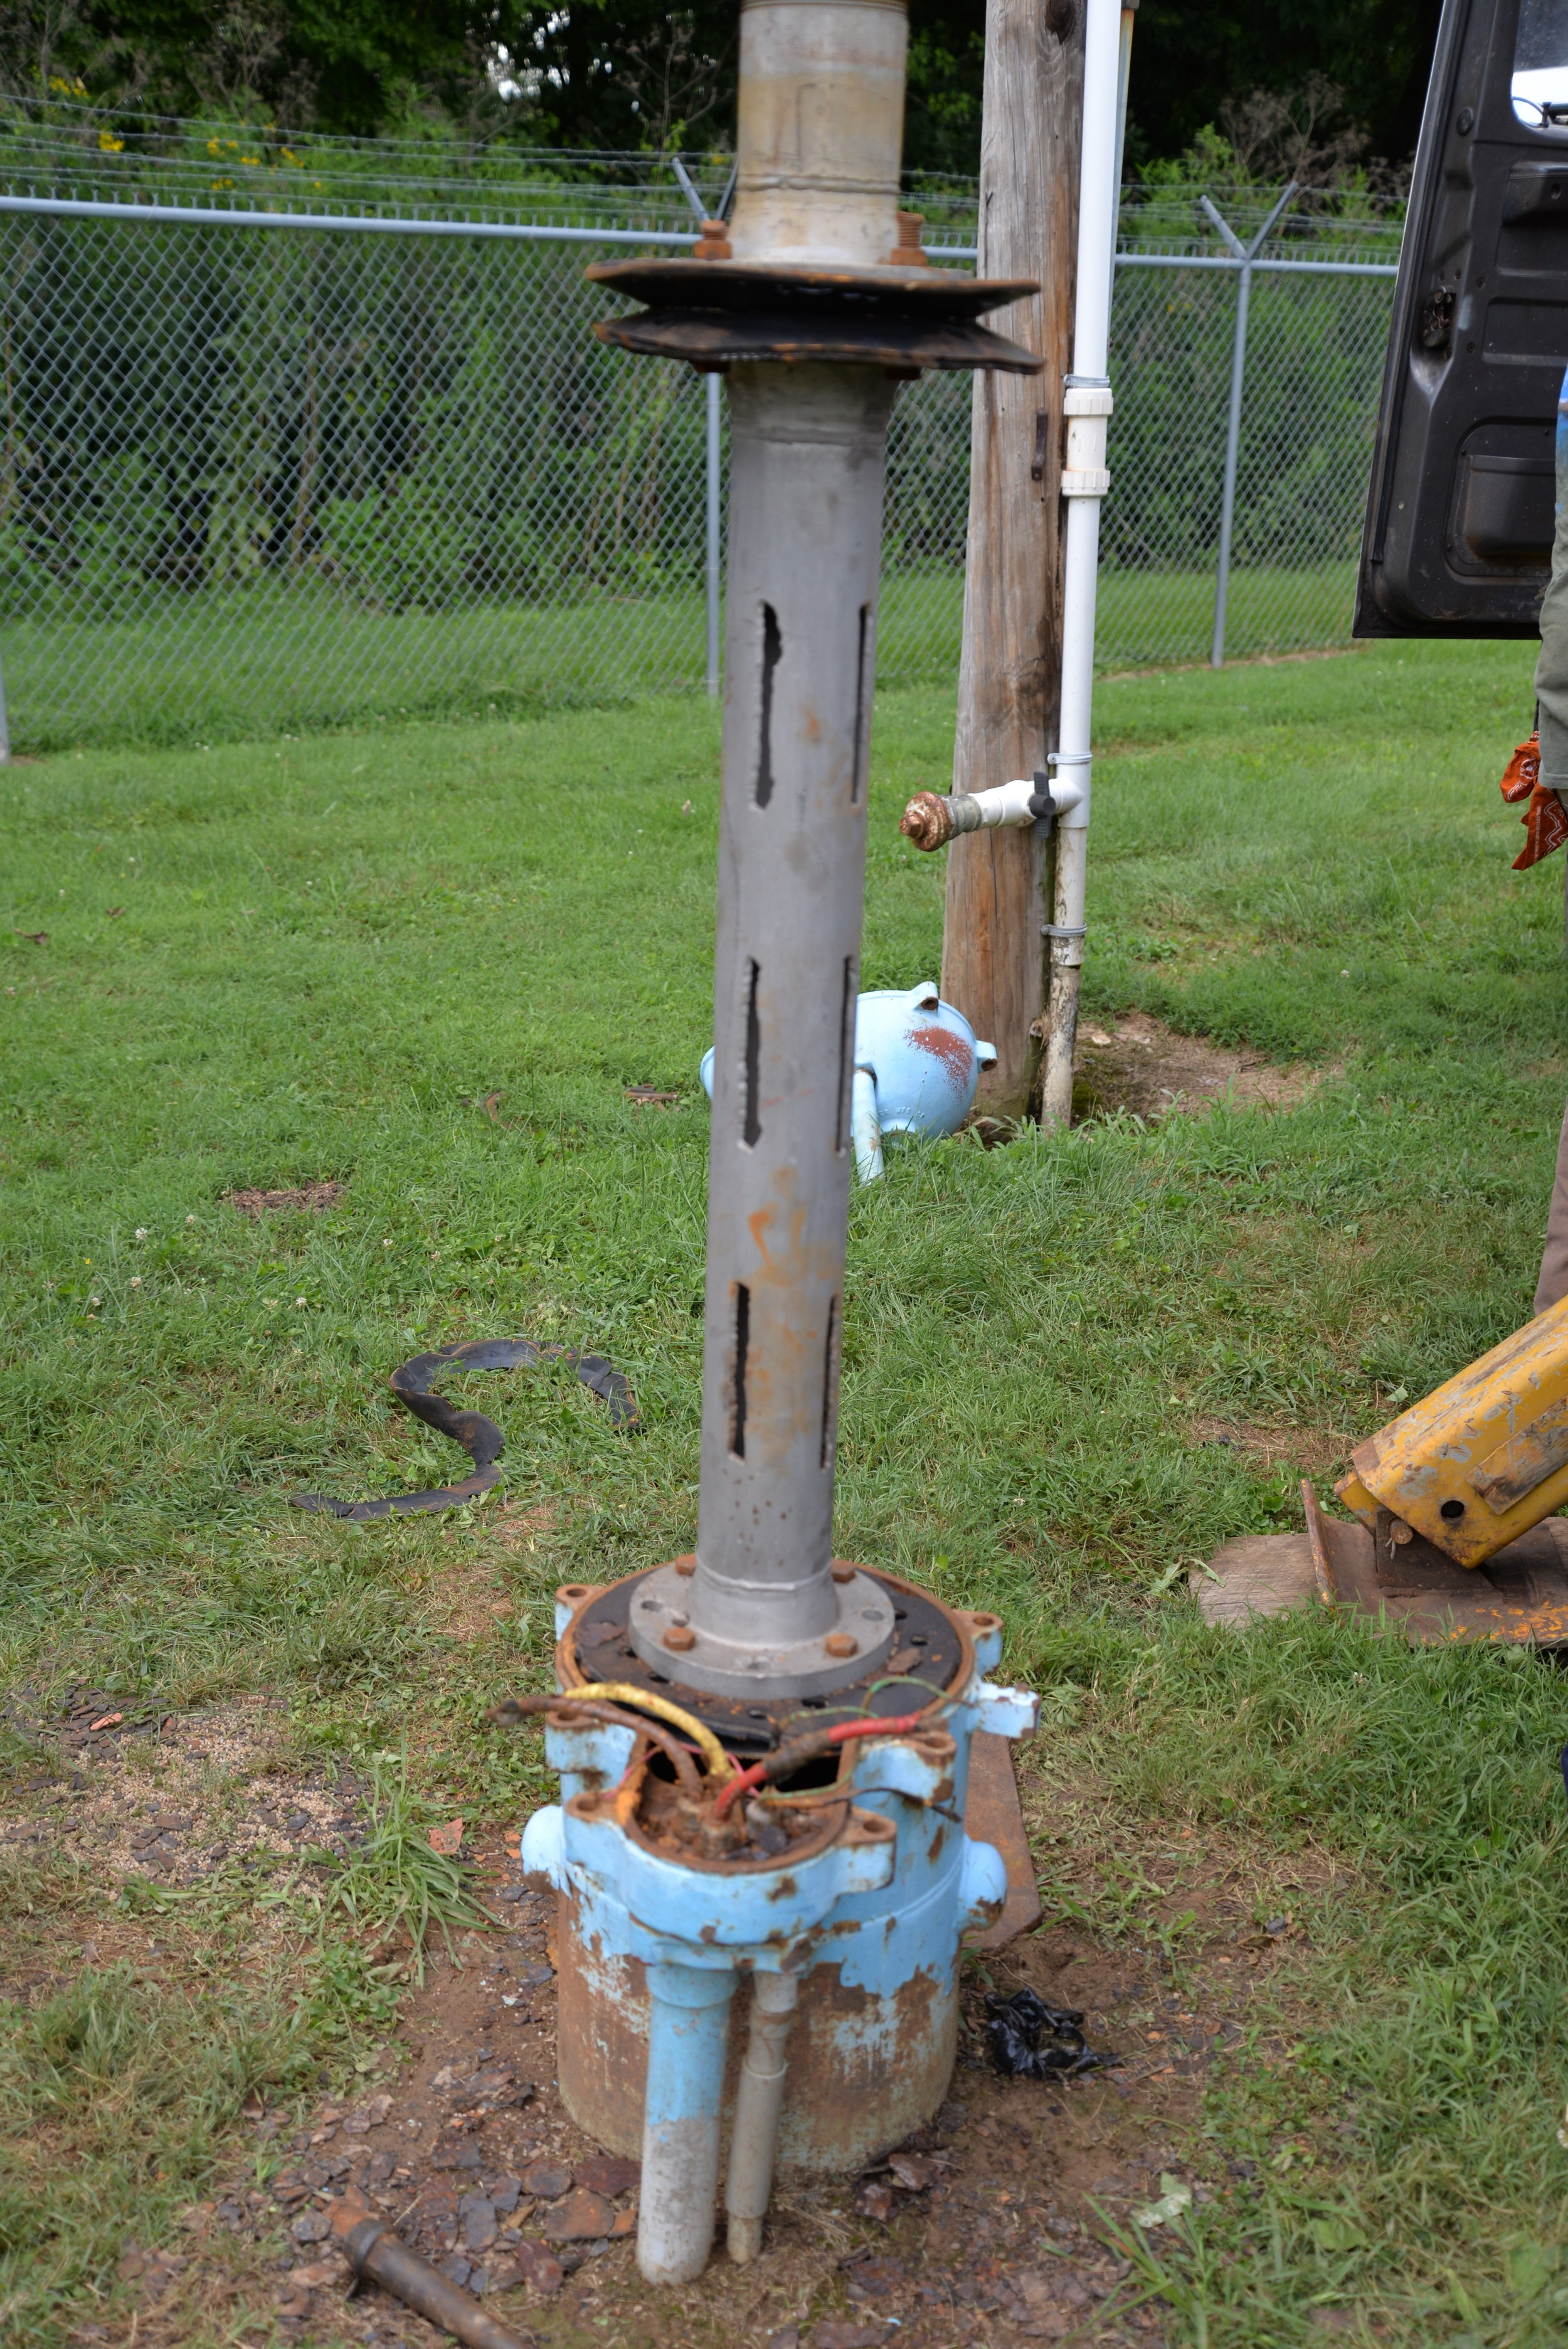 The above image is a close-fitting stainless steel surge block that is used to rehabilitate a well.